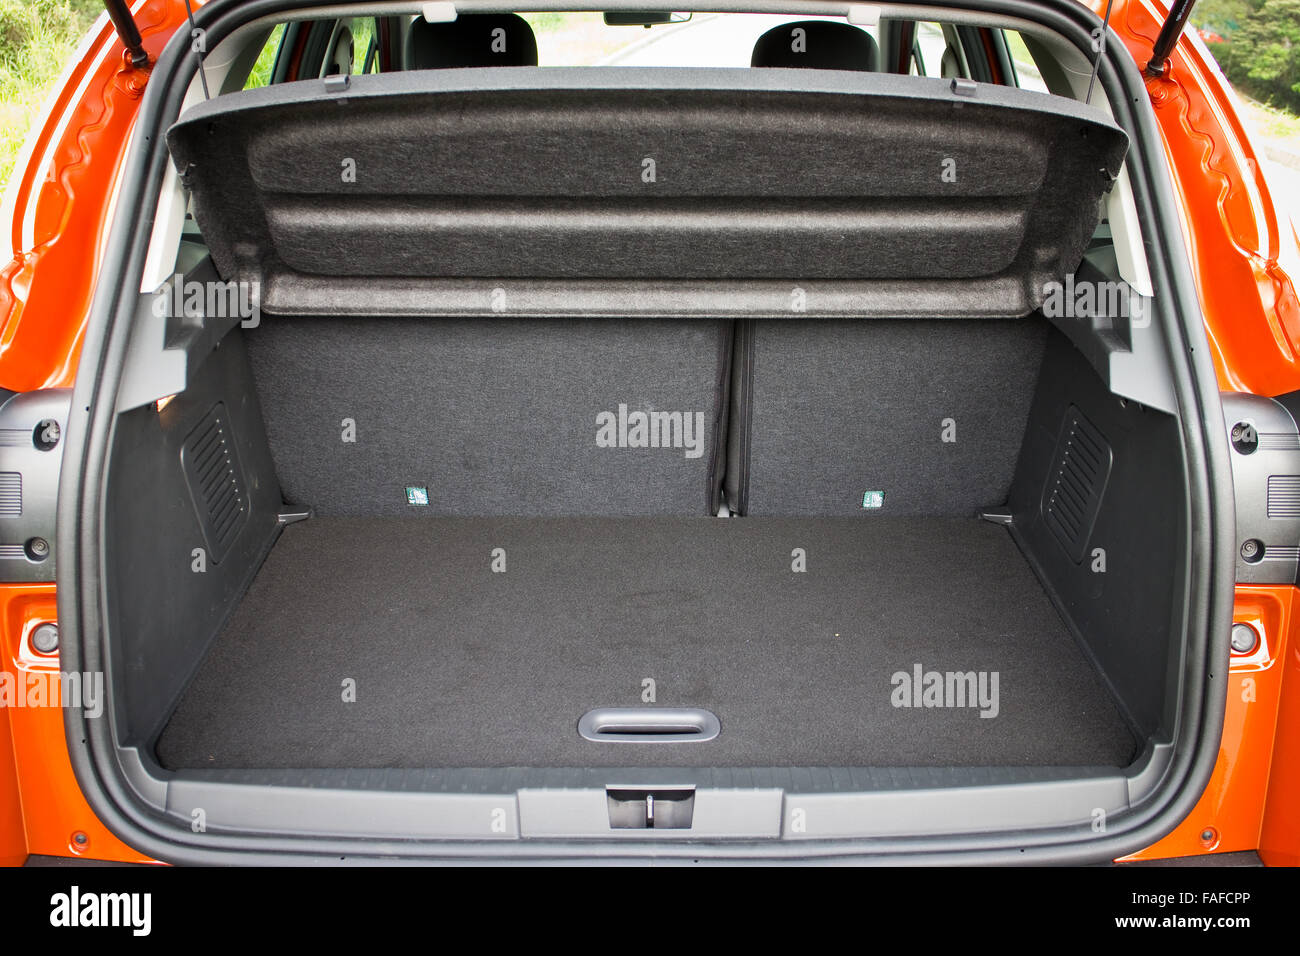 Small Size SUV Car Trunk - Stock Image